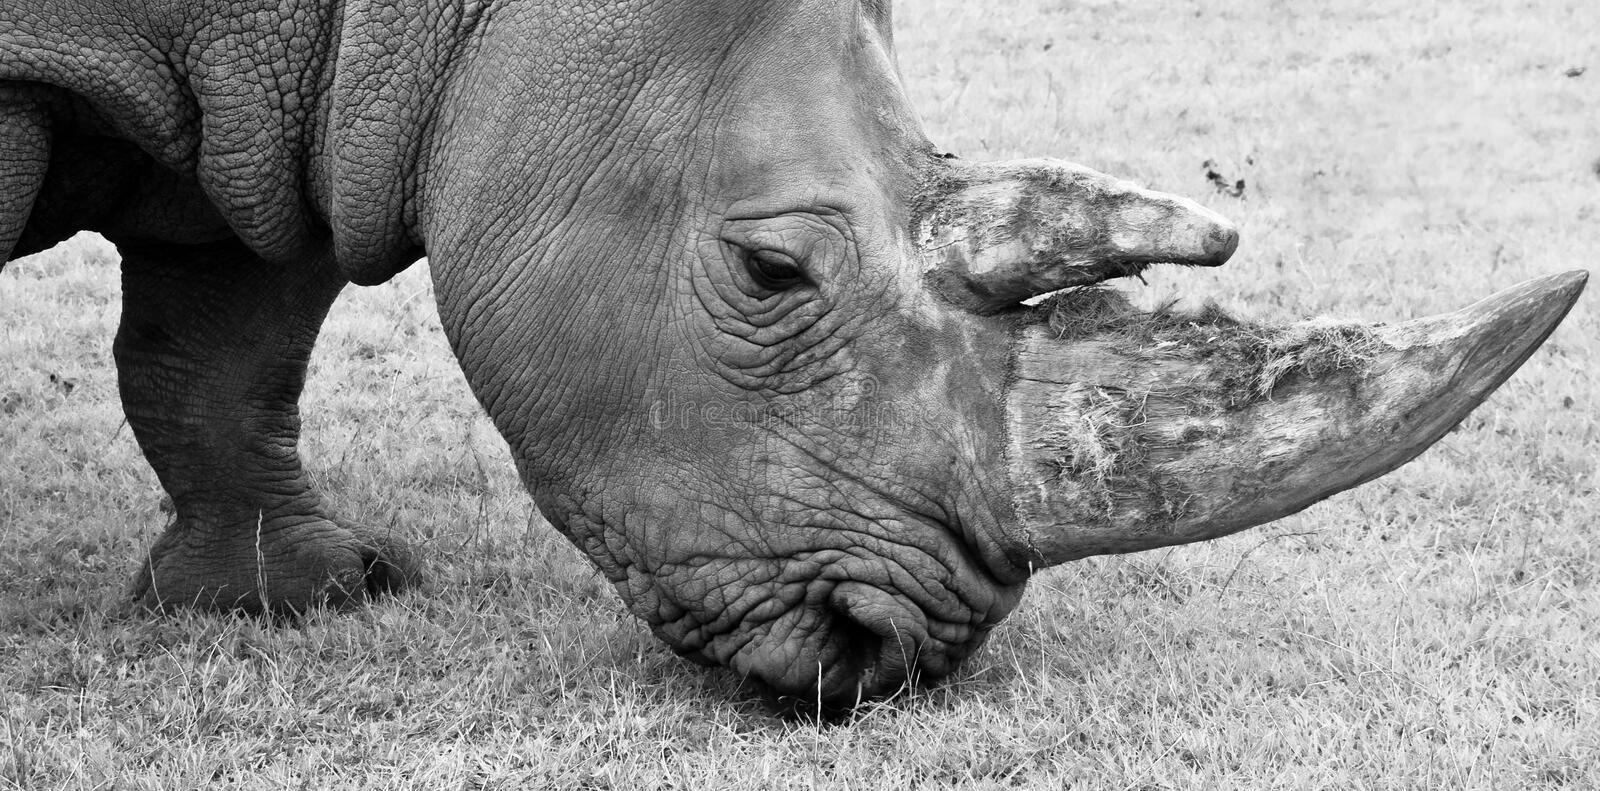 Close up black and white rhino royalty free stock image